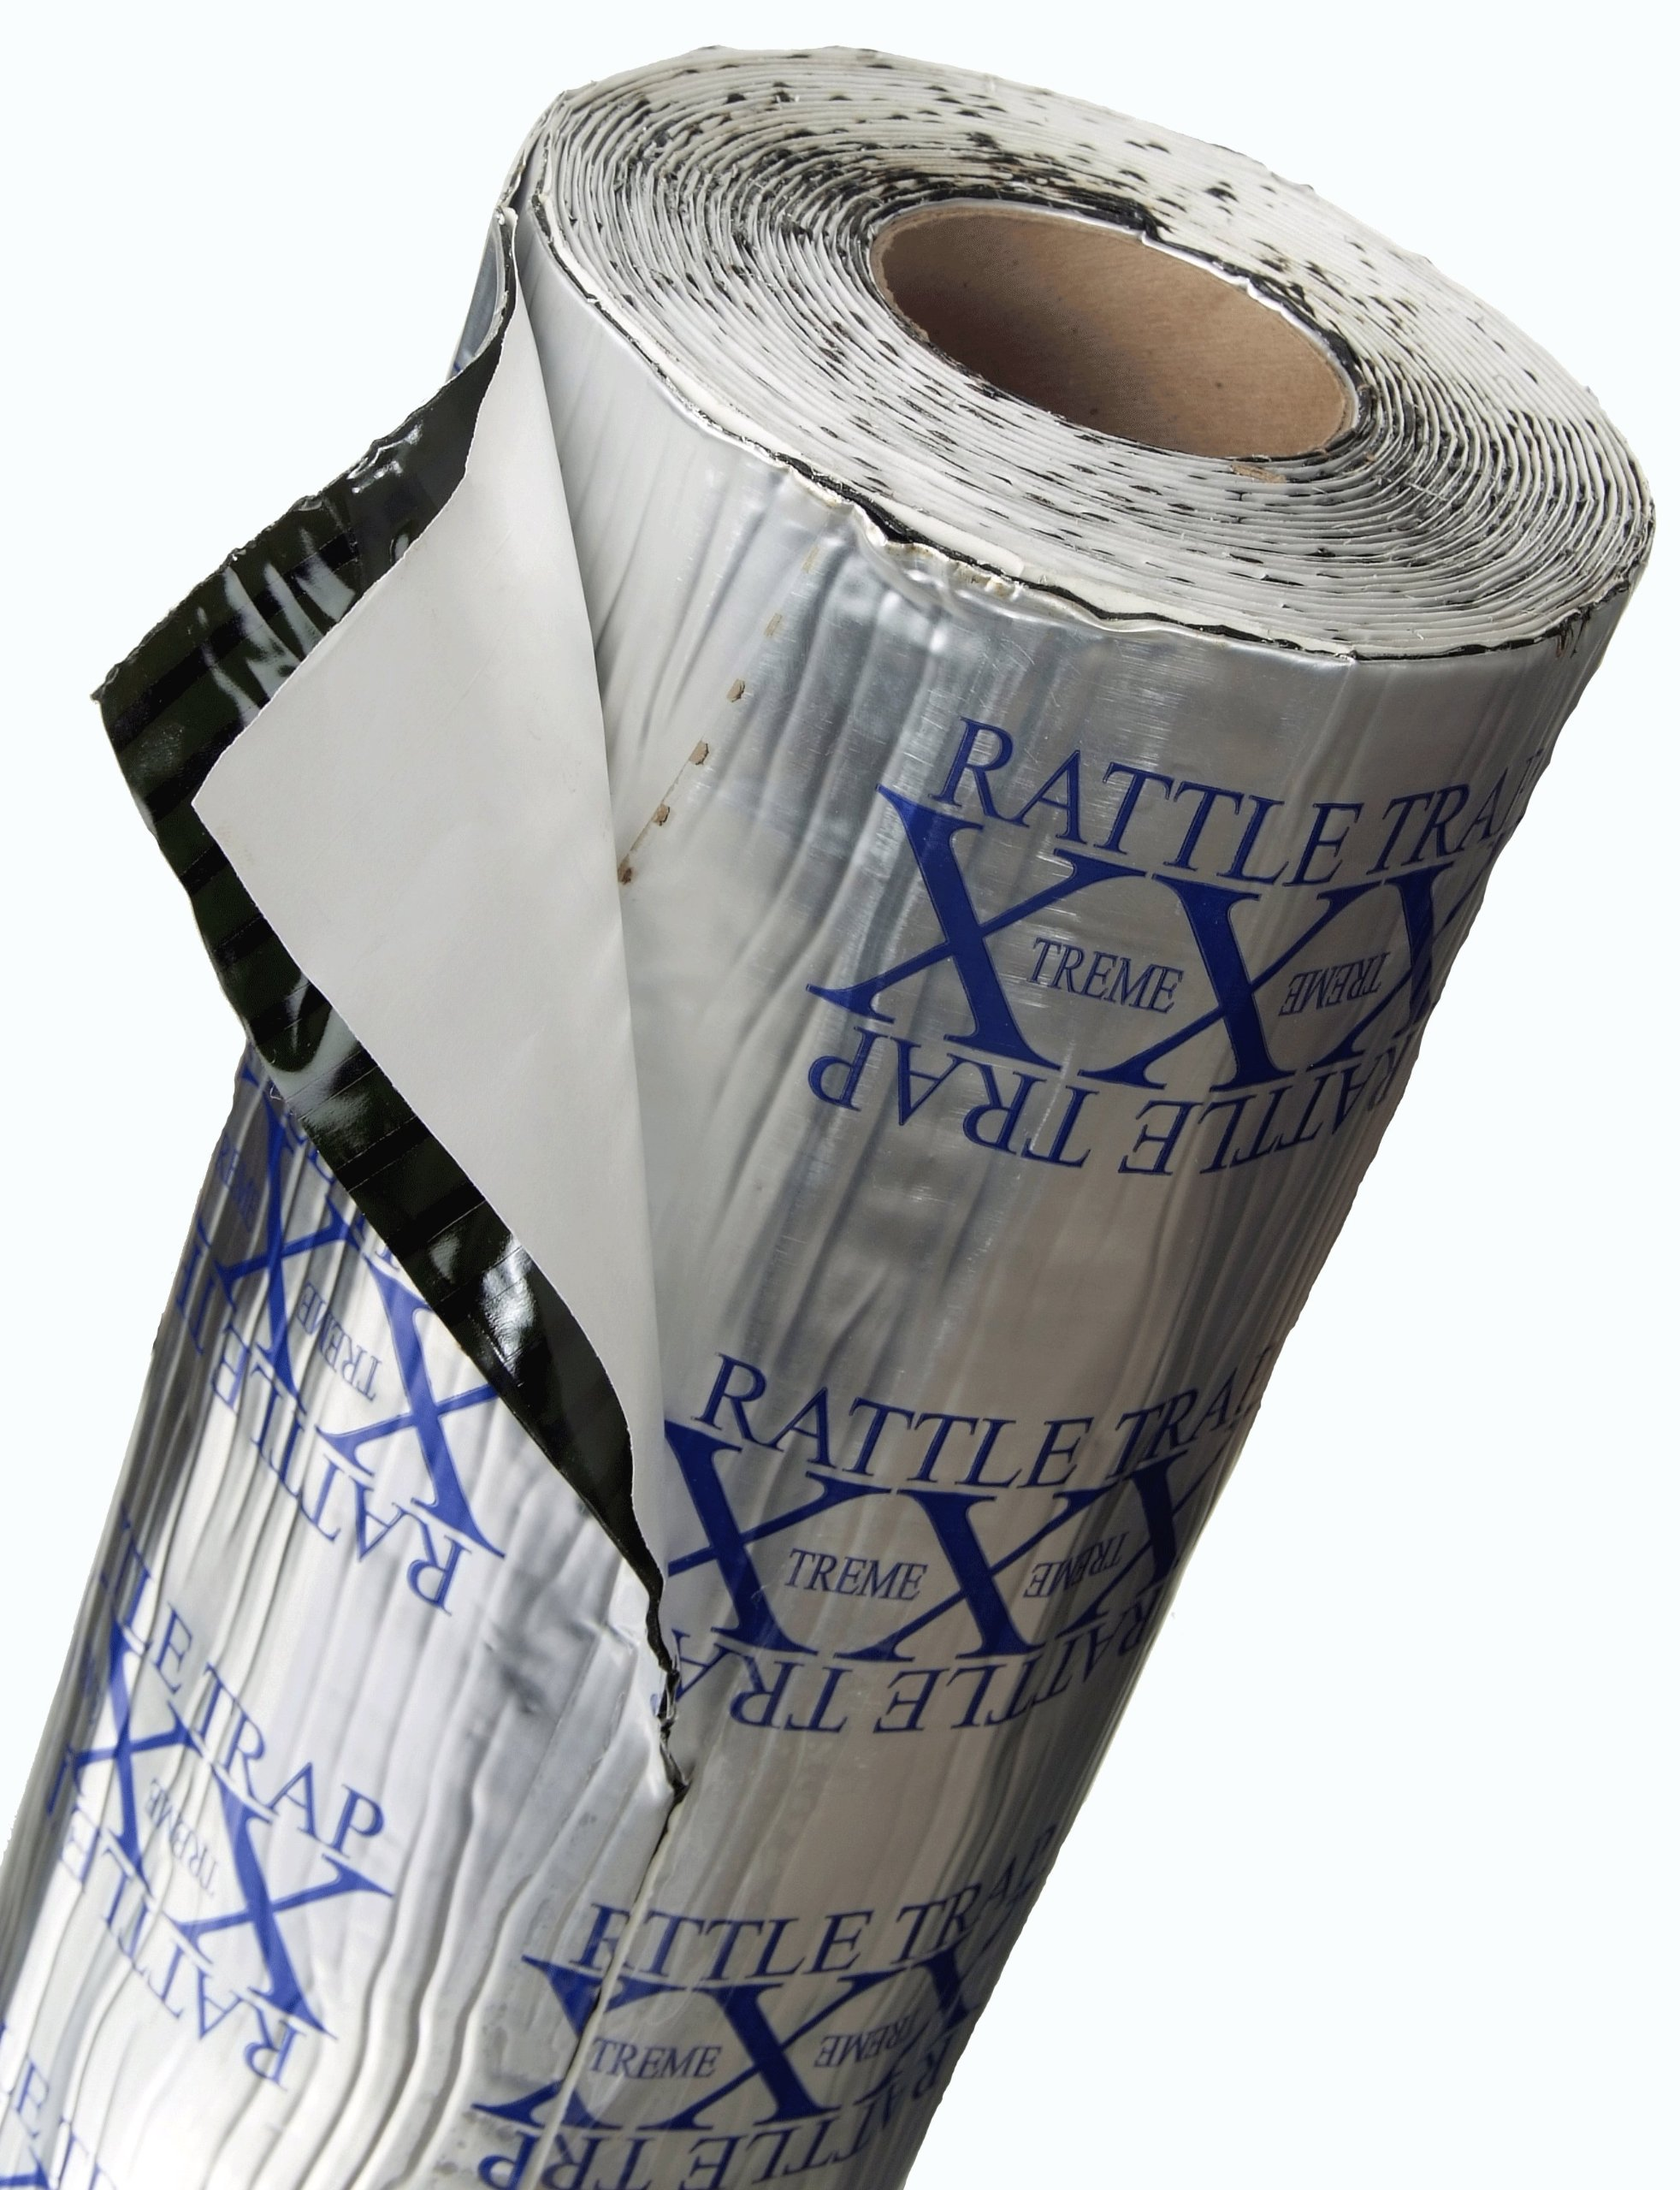 FatMat Self-Adhesive Rattletrap Sound Deadener Pack with Install Kit - 25 Sq Ft x 80 mil Thick by FatMat